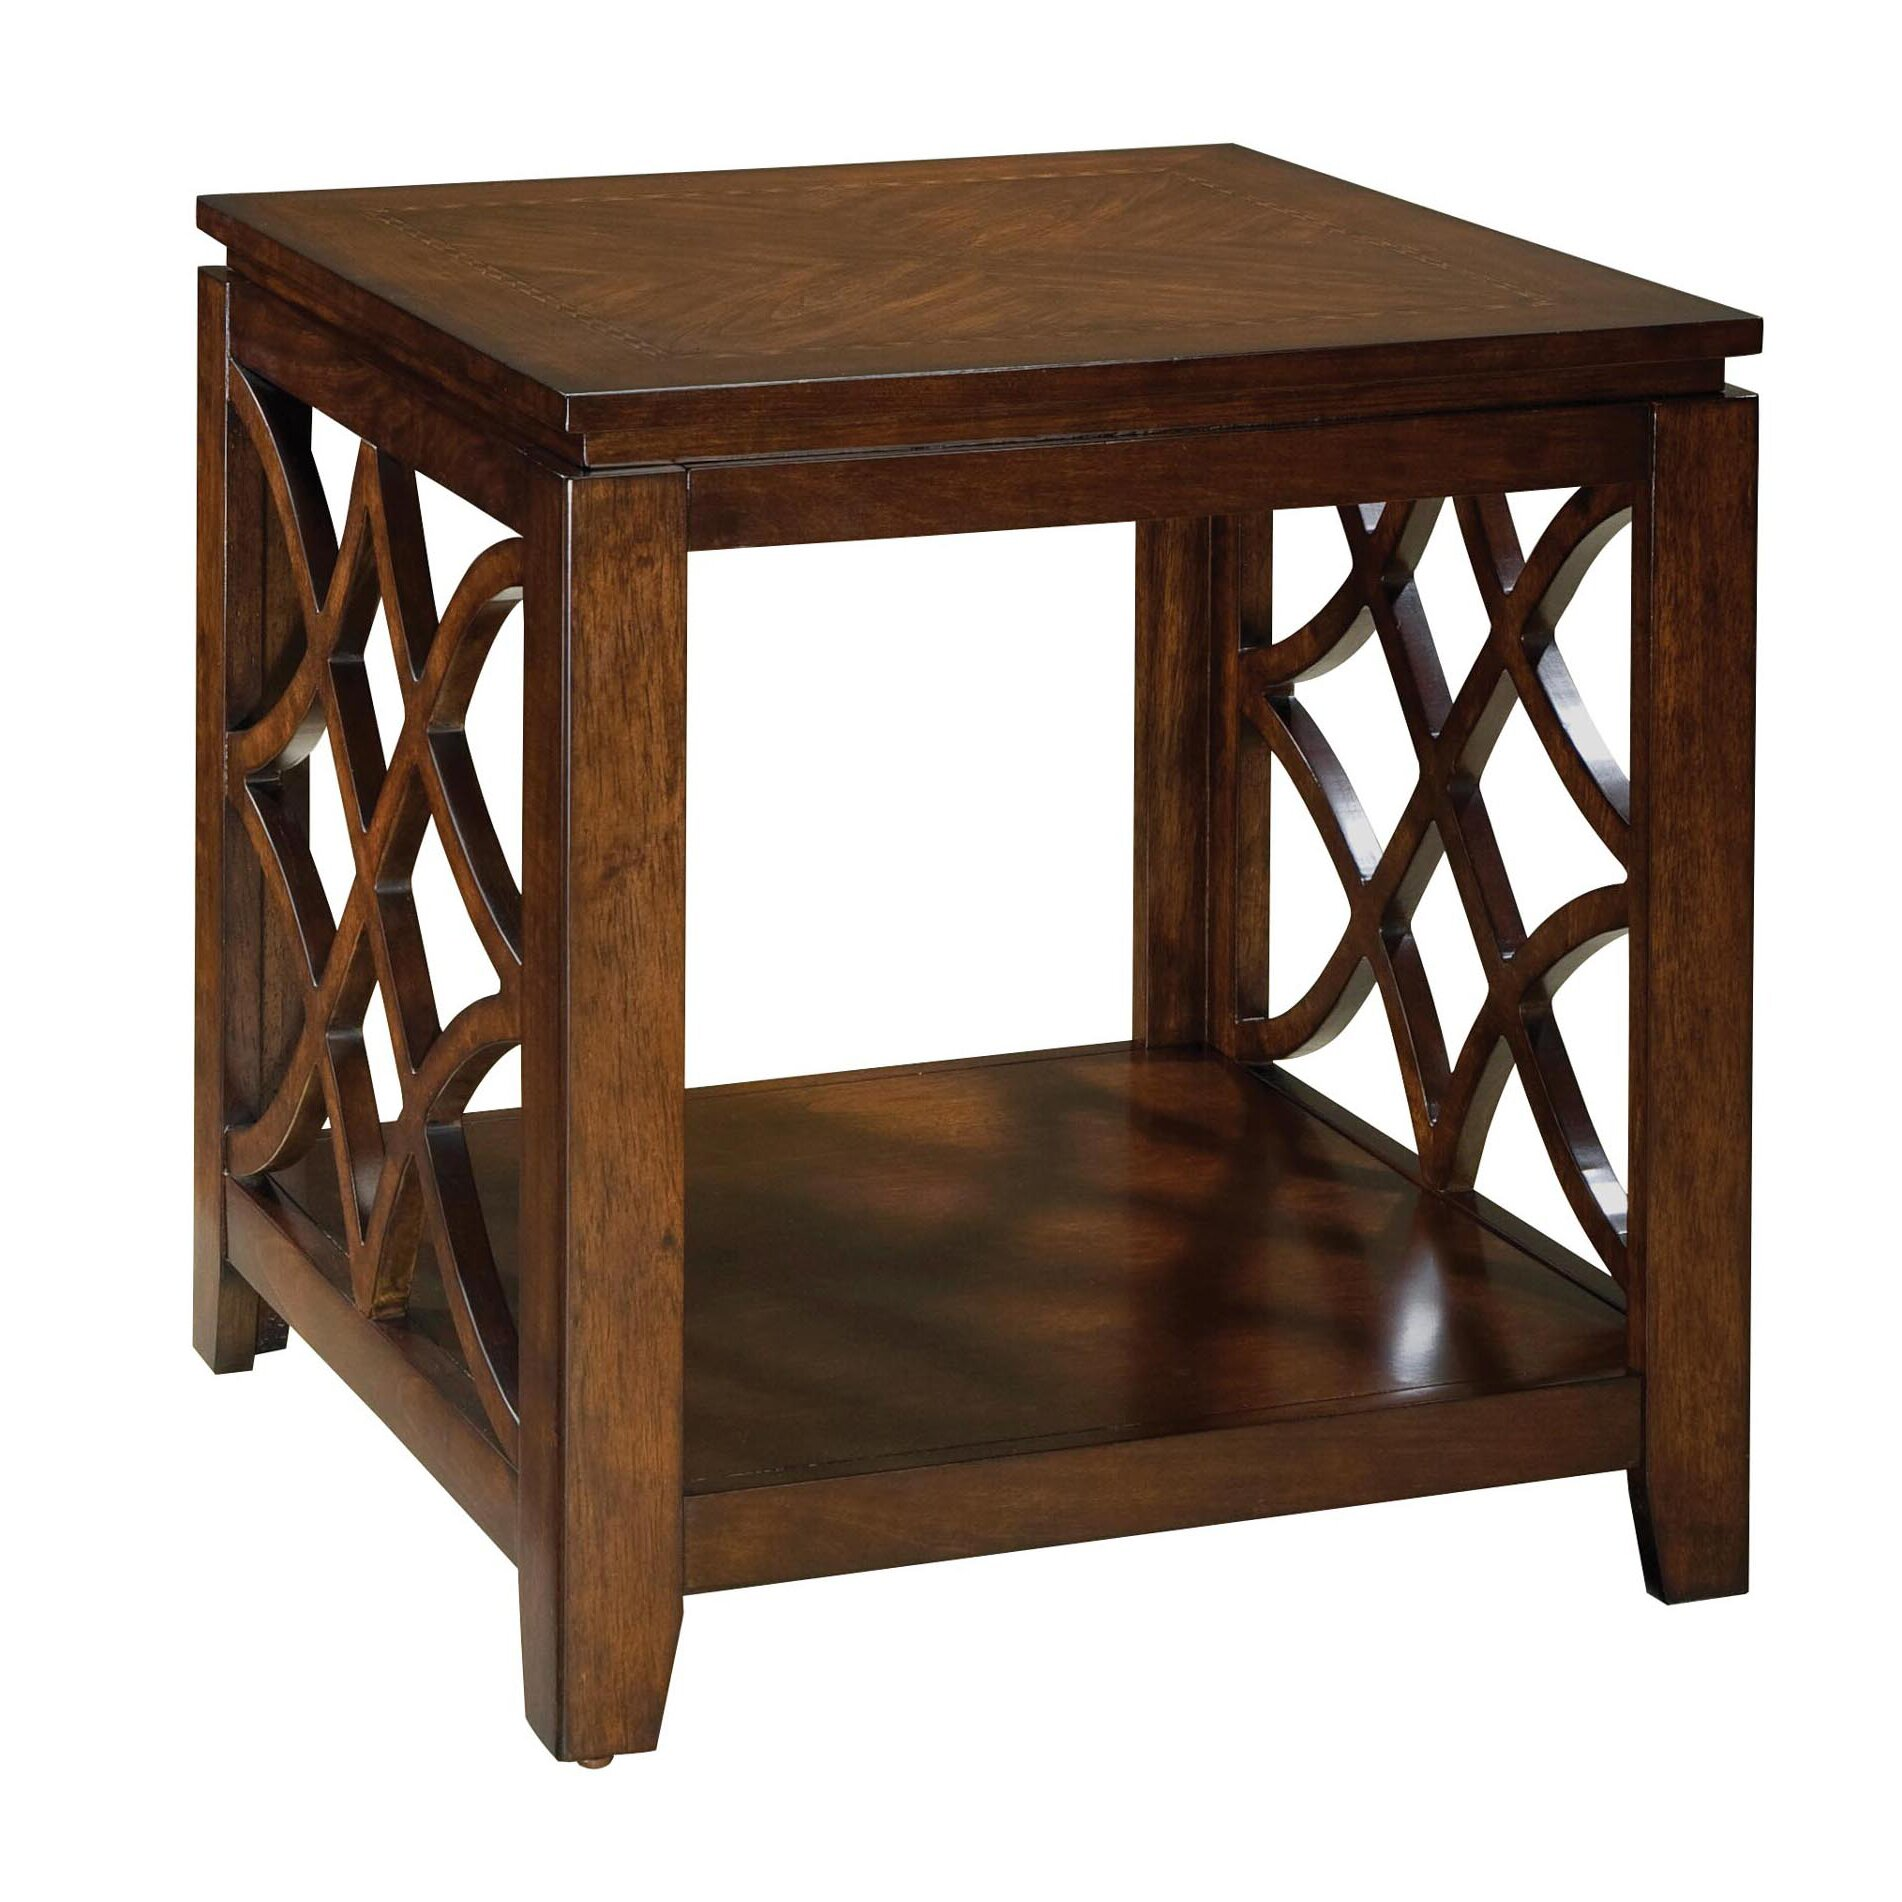 ... Patio Furniture Design Centers; Alcott Hill Reg Boulder Creek End Table  ...